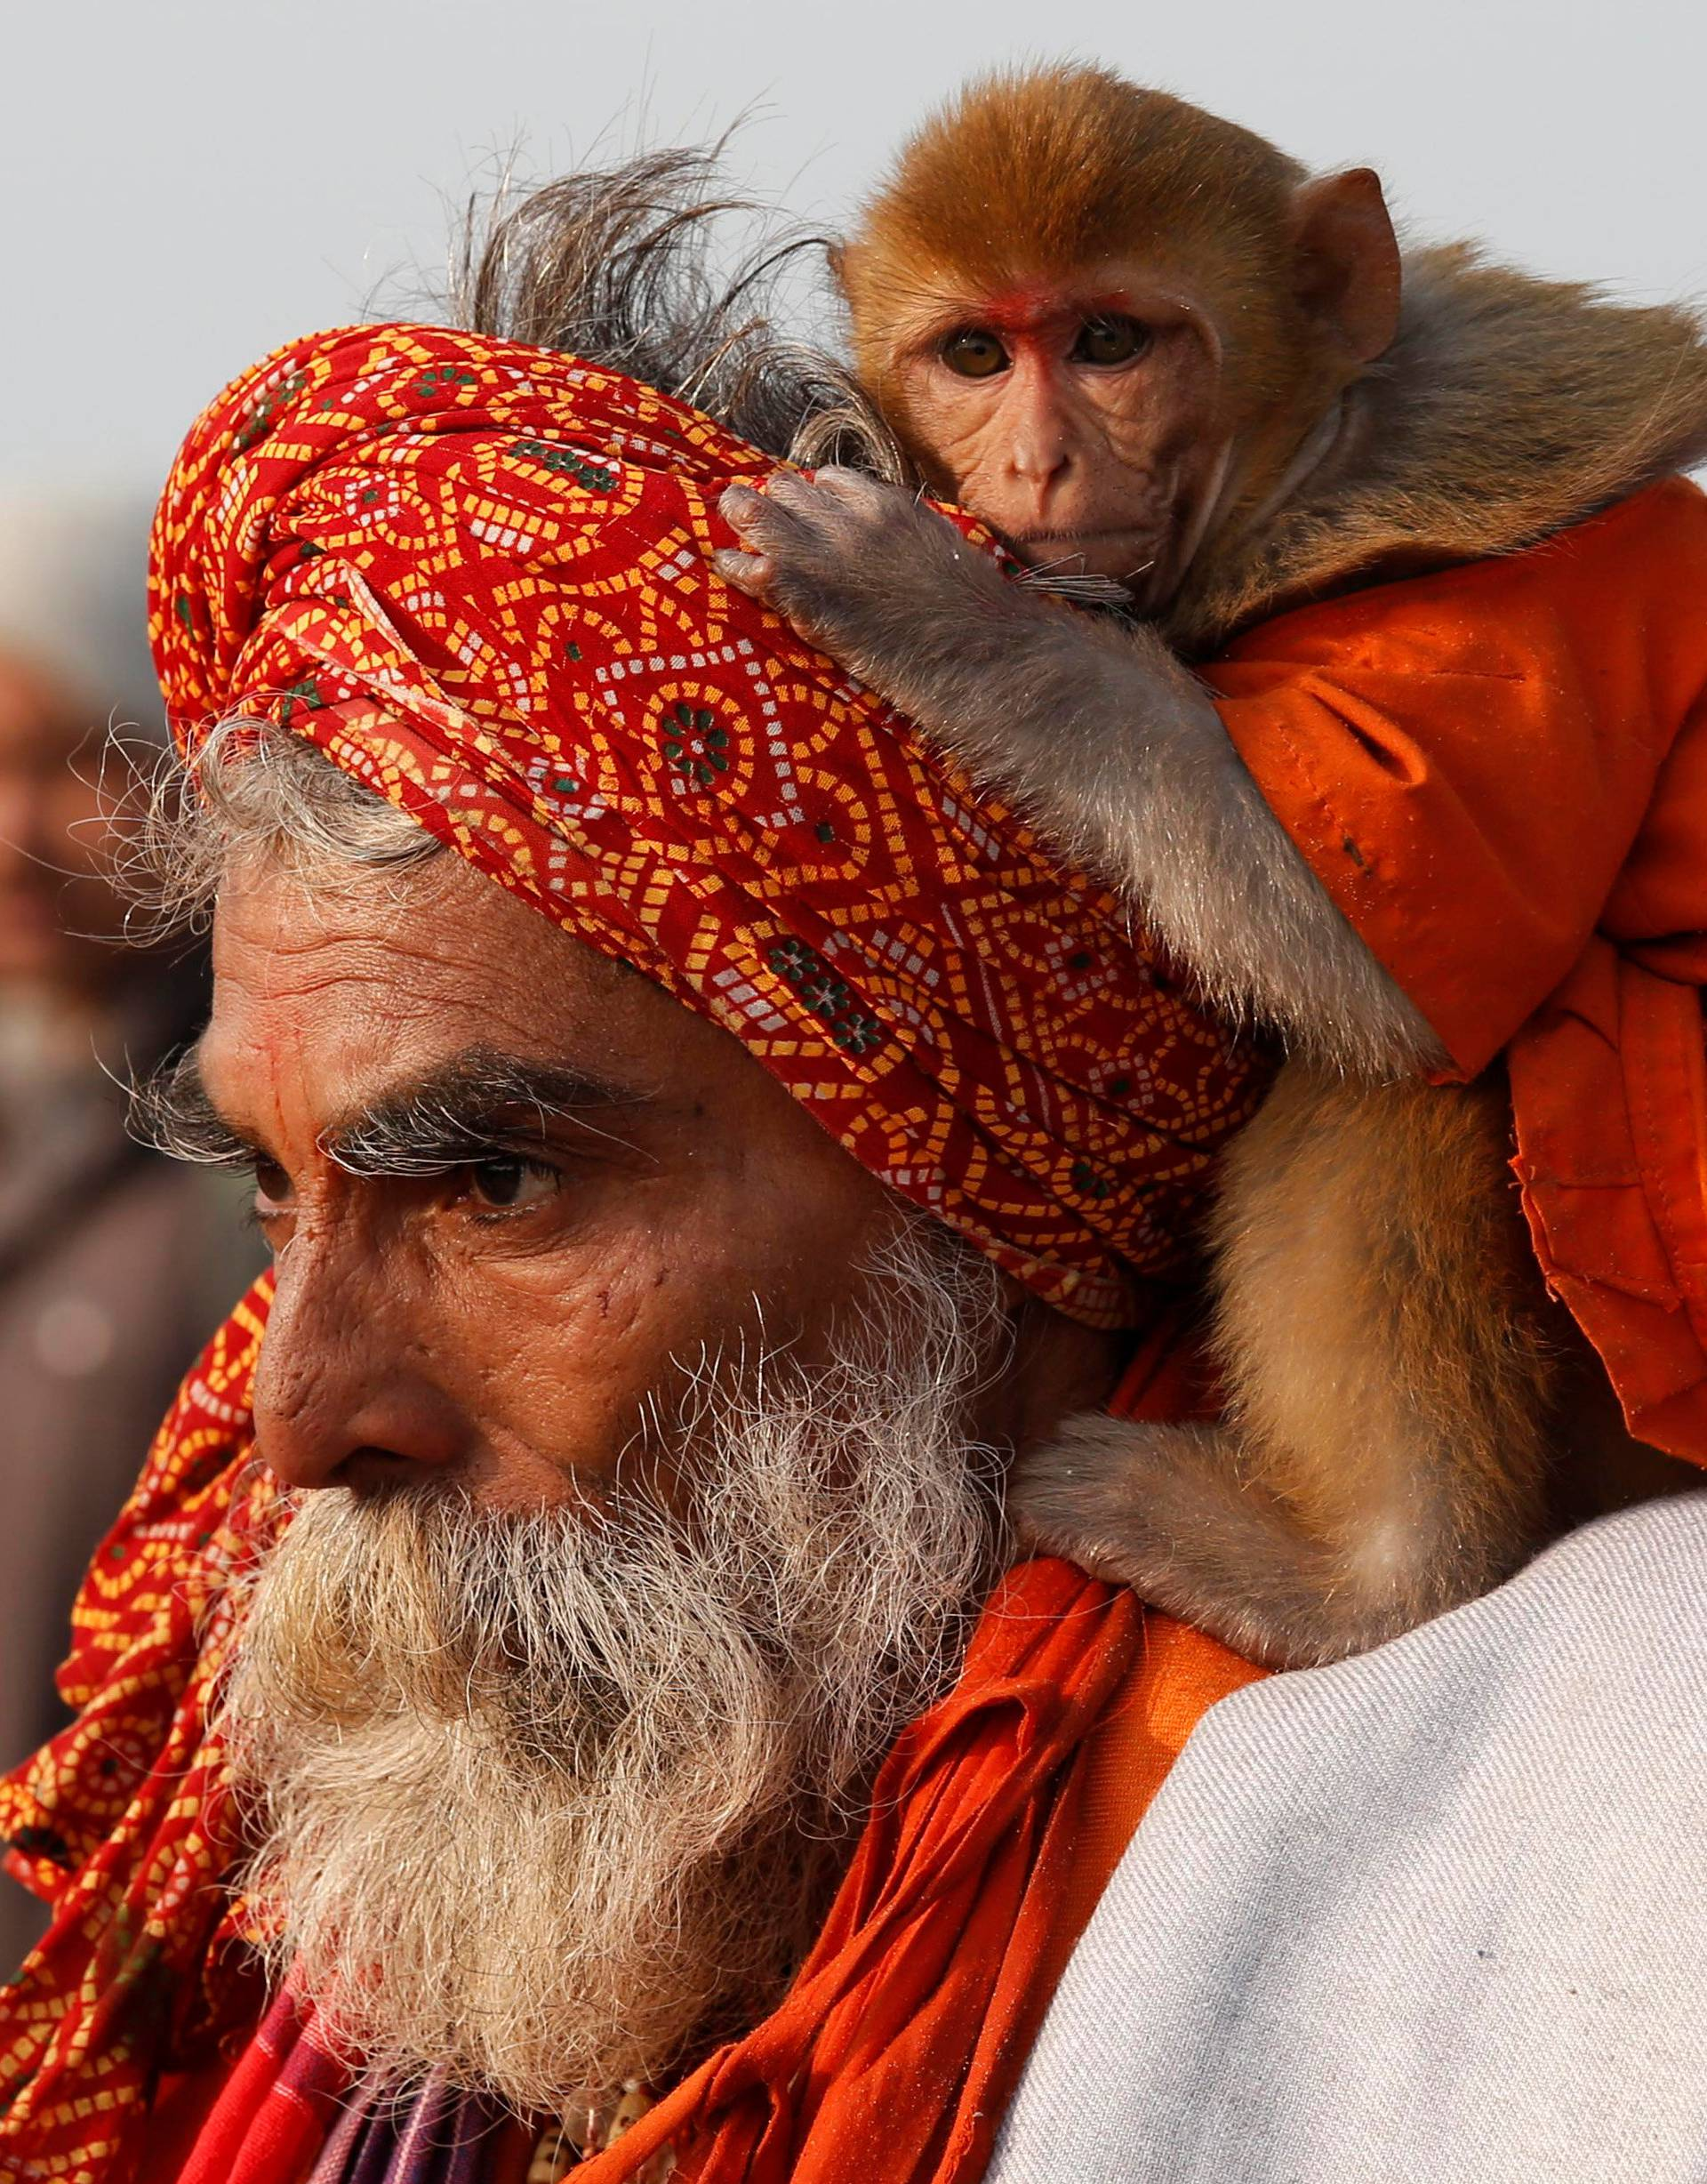 """A Sadhu or a Hindu holy man carrying his pet monkey walks after taking a dip at the confluence of the river Ganges and the Bay of Bengal on the occasion of """"Makar Sankranti"""" festival at Sagar Island"""